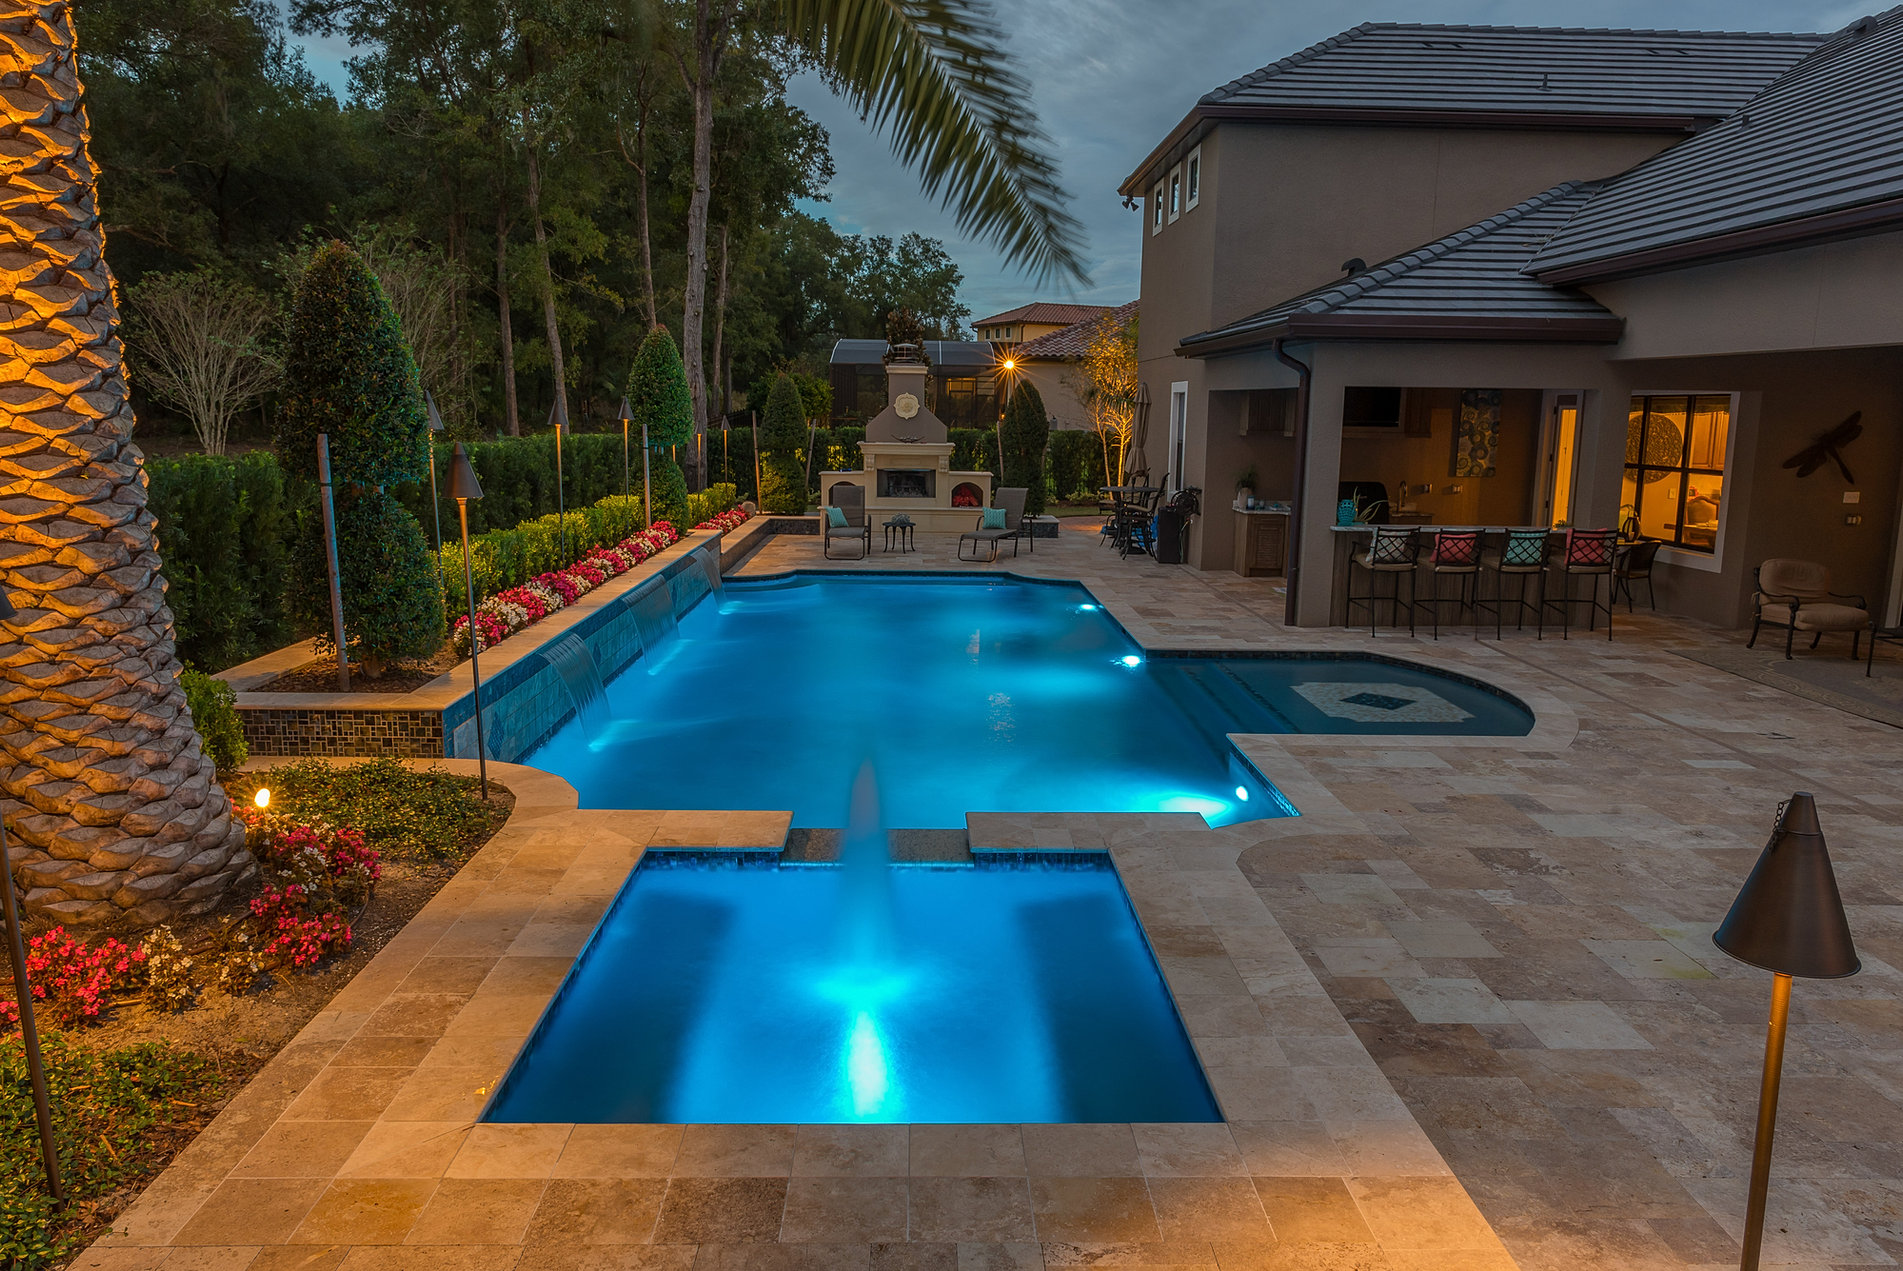 Southern pool designs central florida 39 s luxury pool builder for Southern designs